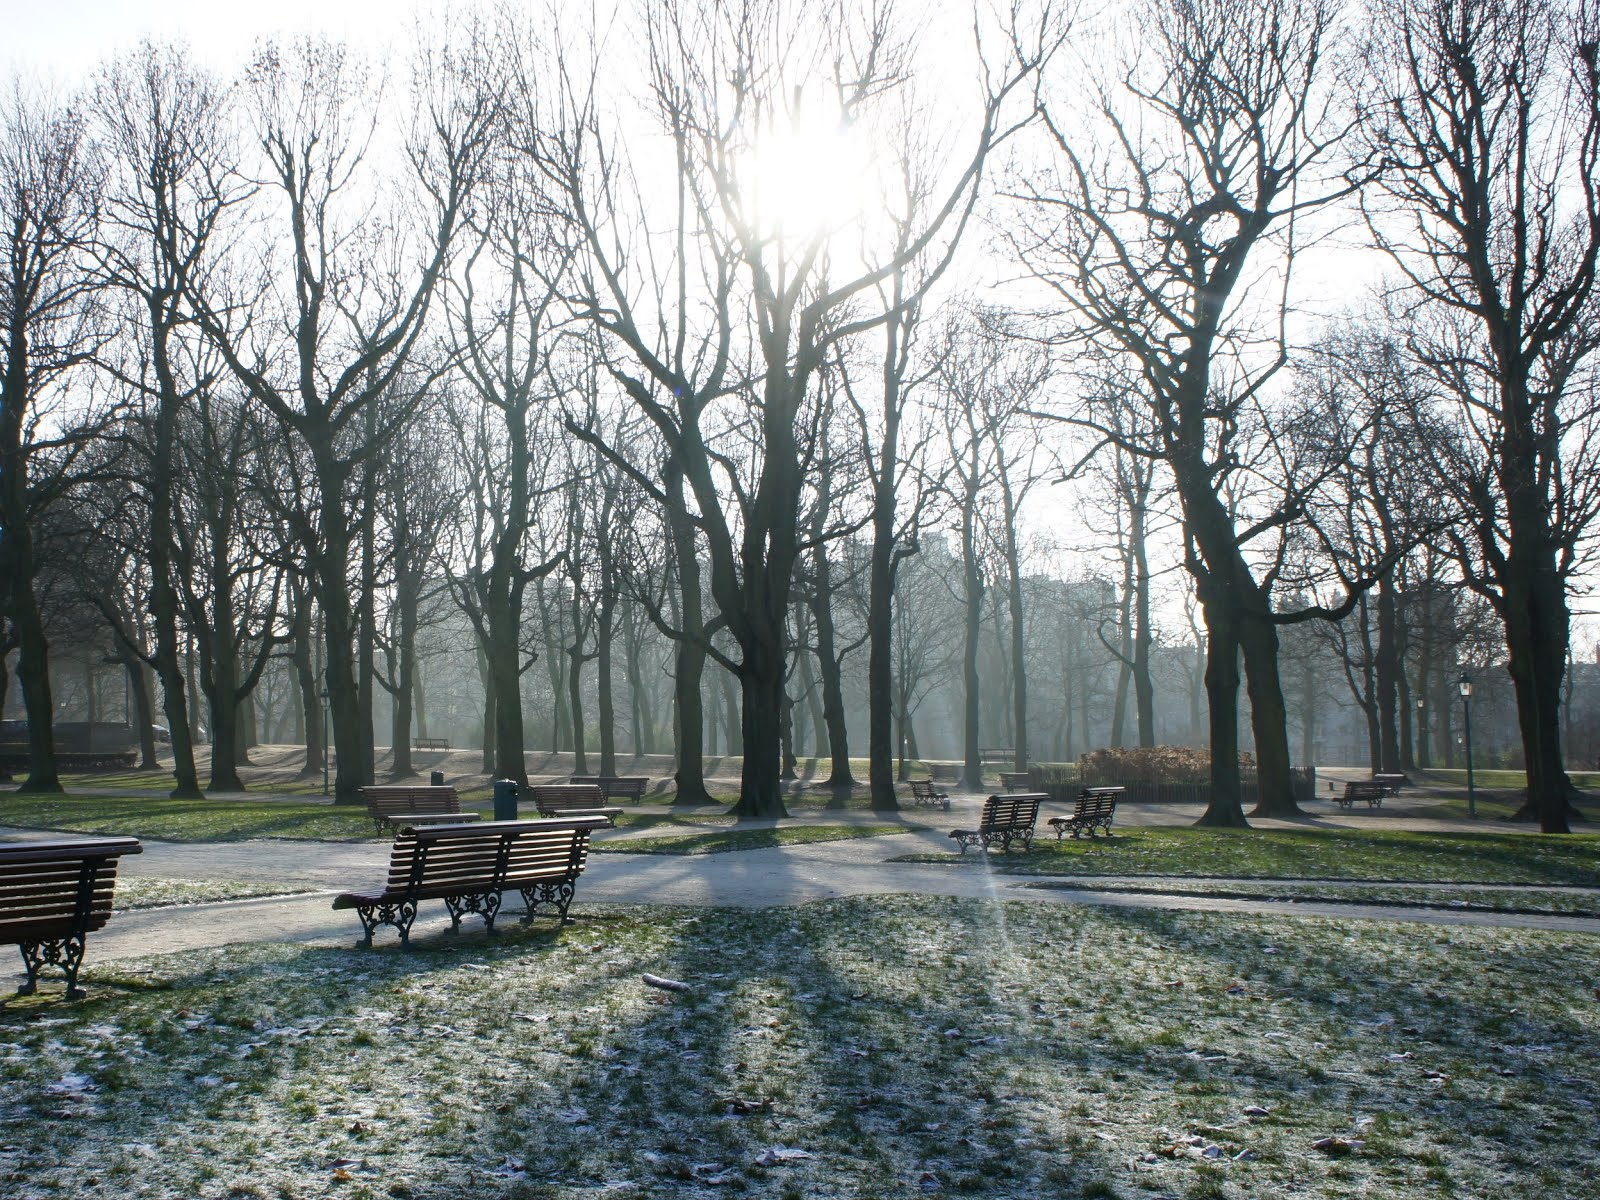 Sun shining through the trees in the Cinquantenaire Park in Brussels on a cold morning